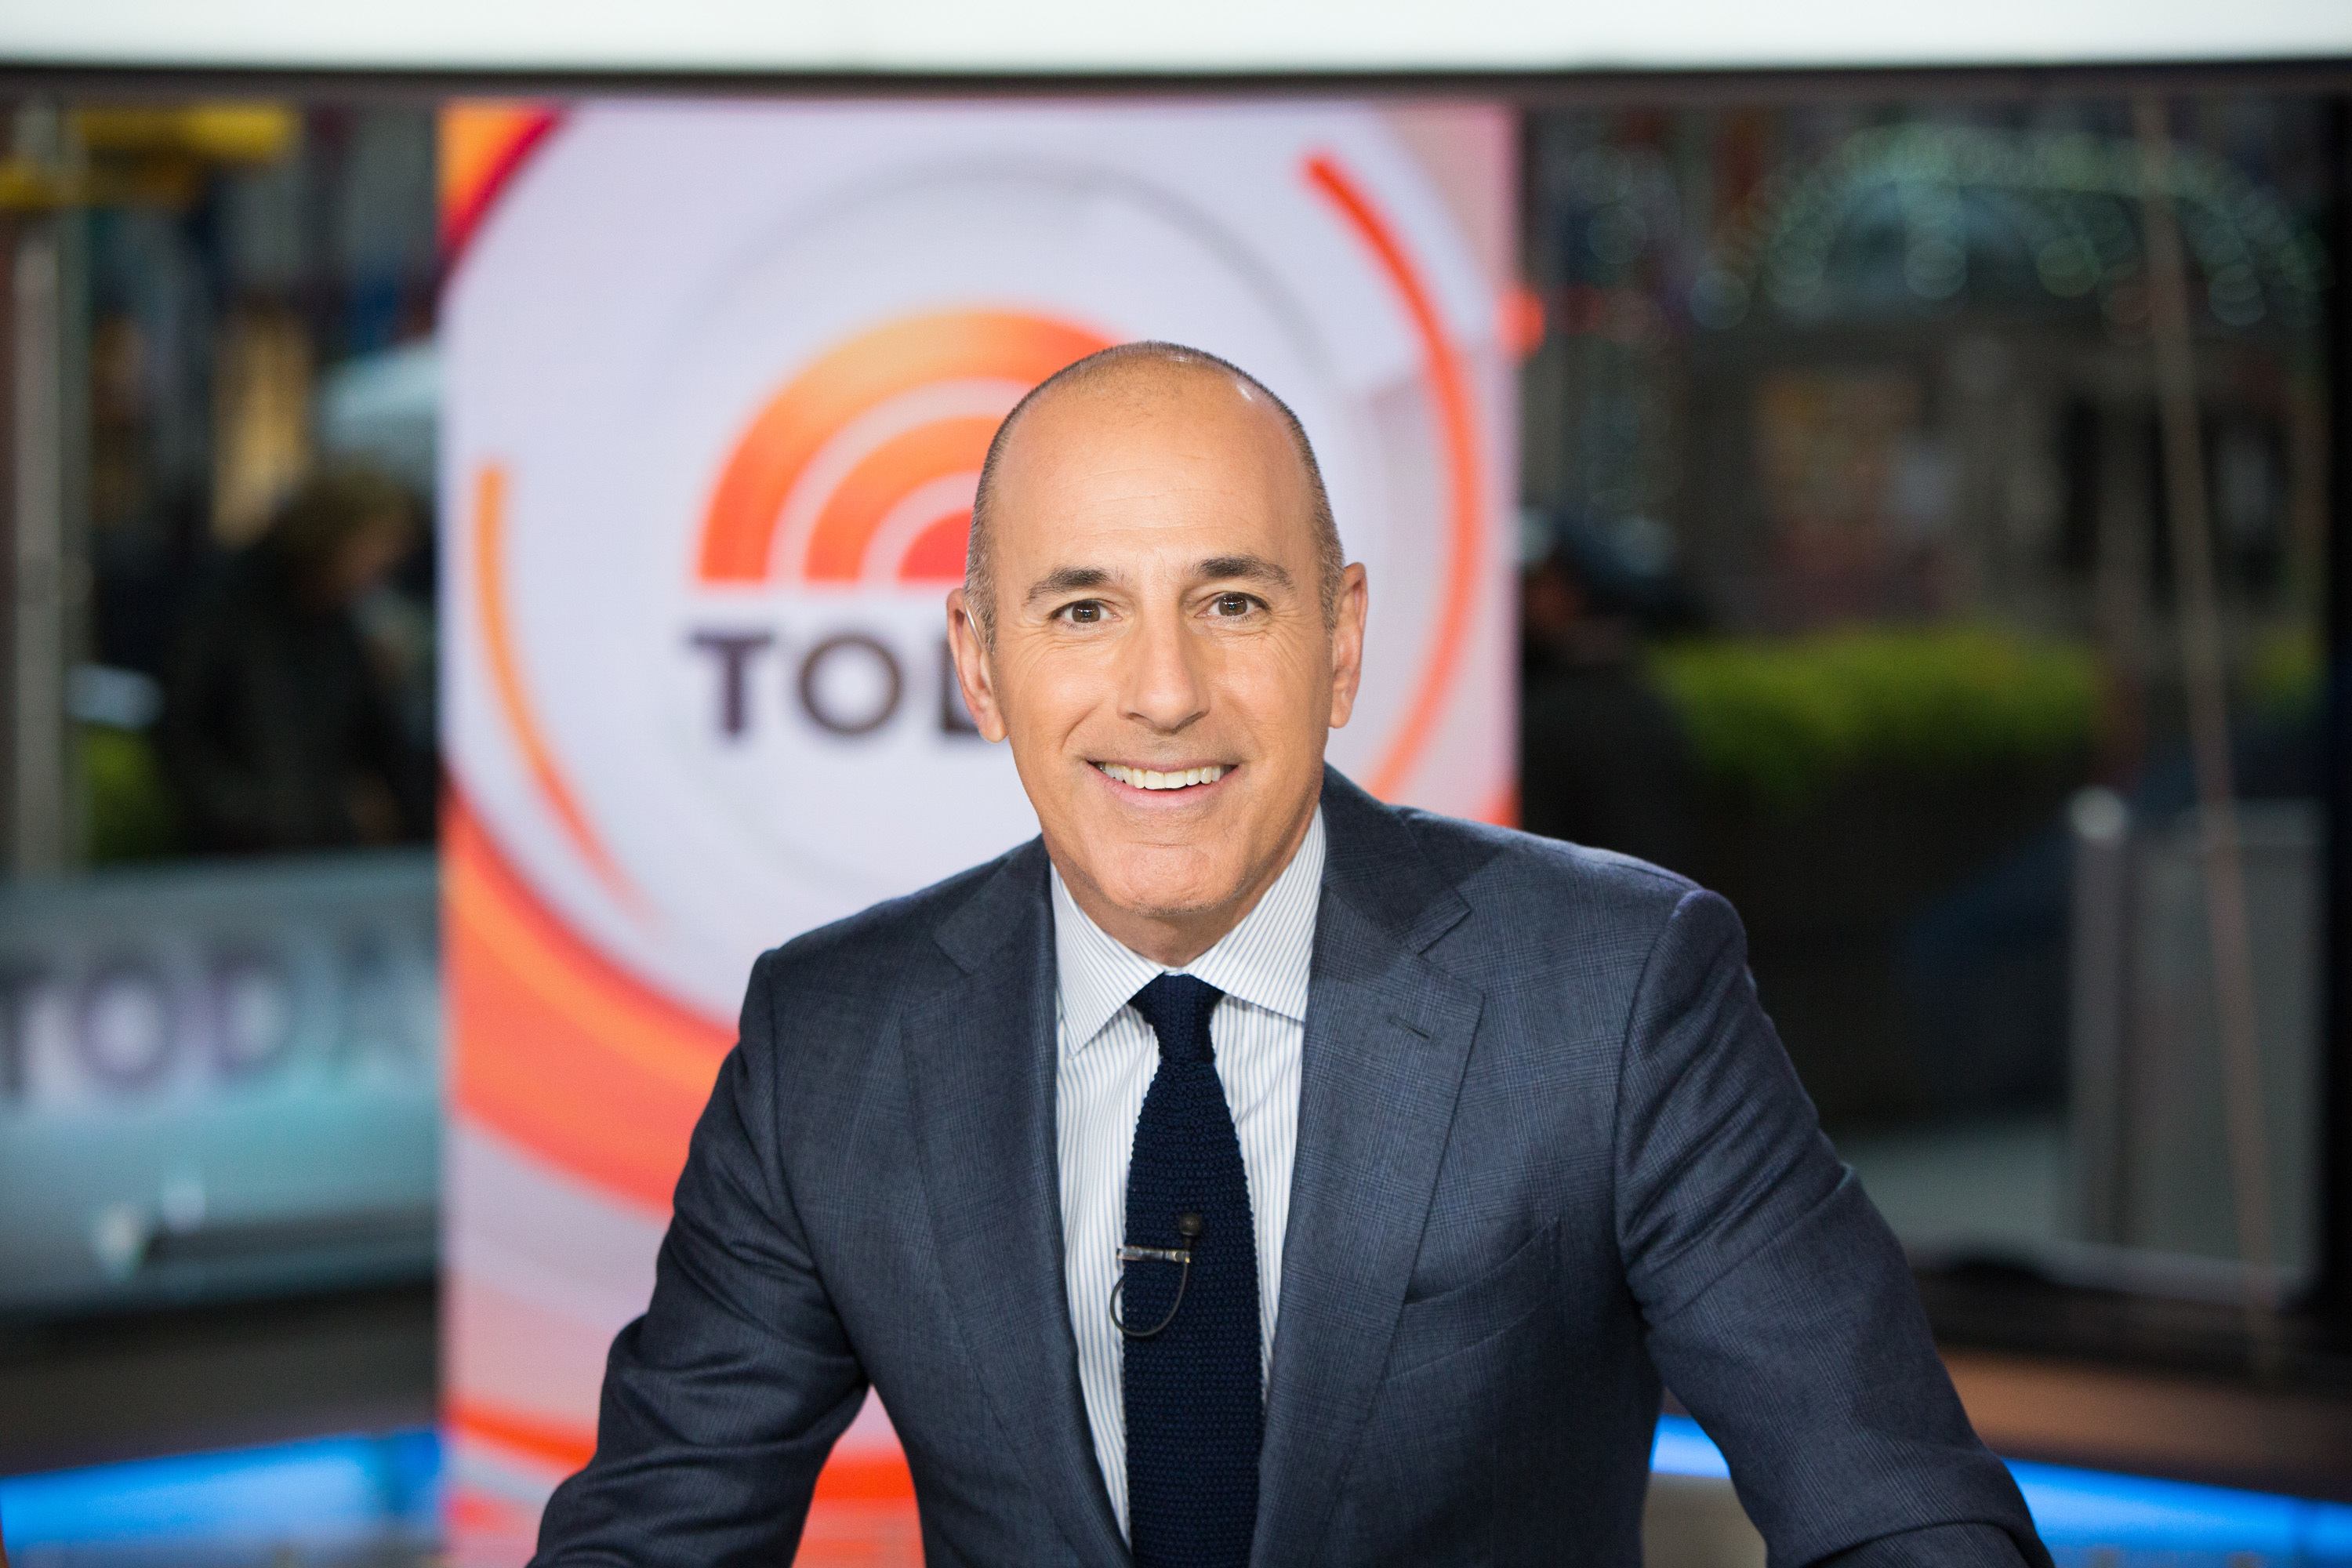 Matt Lauer's rumored jealousy of potential 'Today' rivals left NBC in the lurch